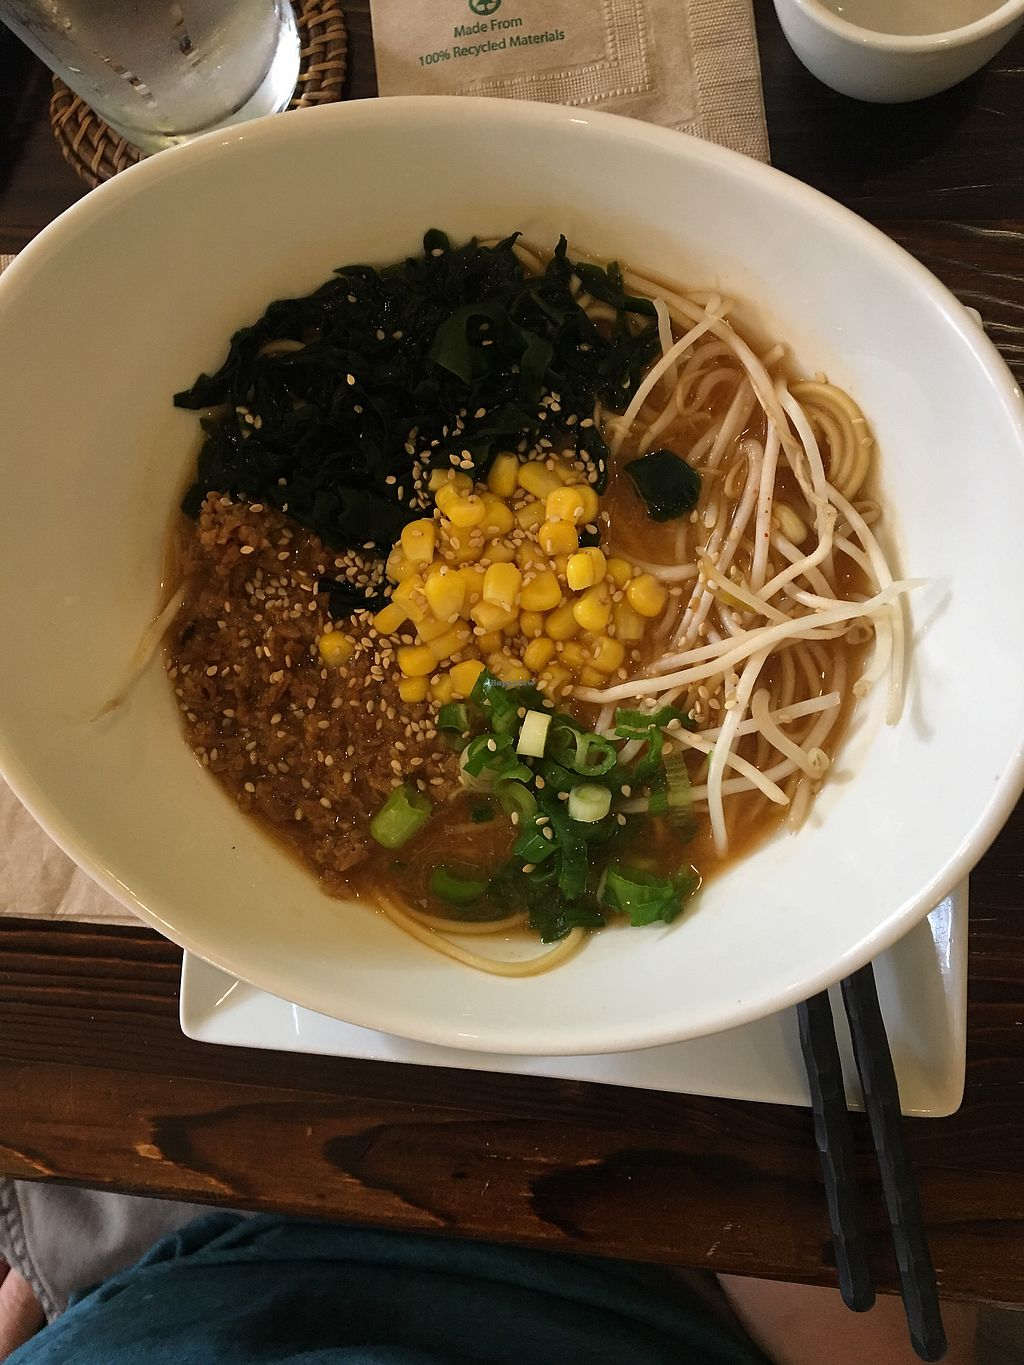 """Photo of VegiLicious  by <a href=""""/members/profile/jkseoulcraic"""">jkseoulcraic</a> <br/>Ramen. Very delicious! <br/> March 18, 2018  - <a href='/contact/abuse/image/36781/372656'>Report</a>"""